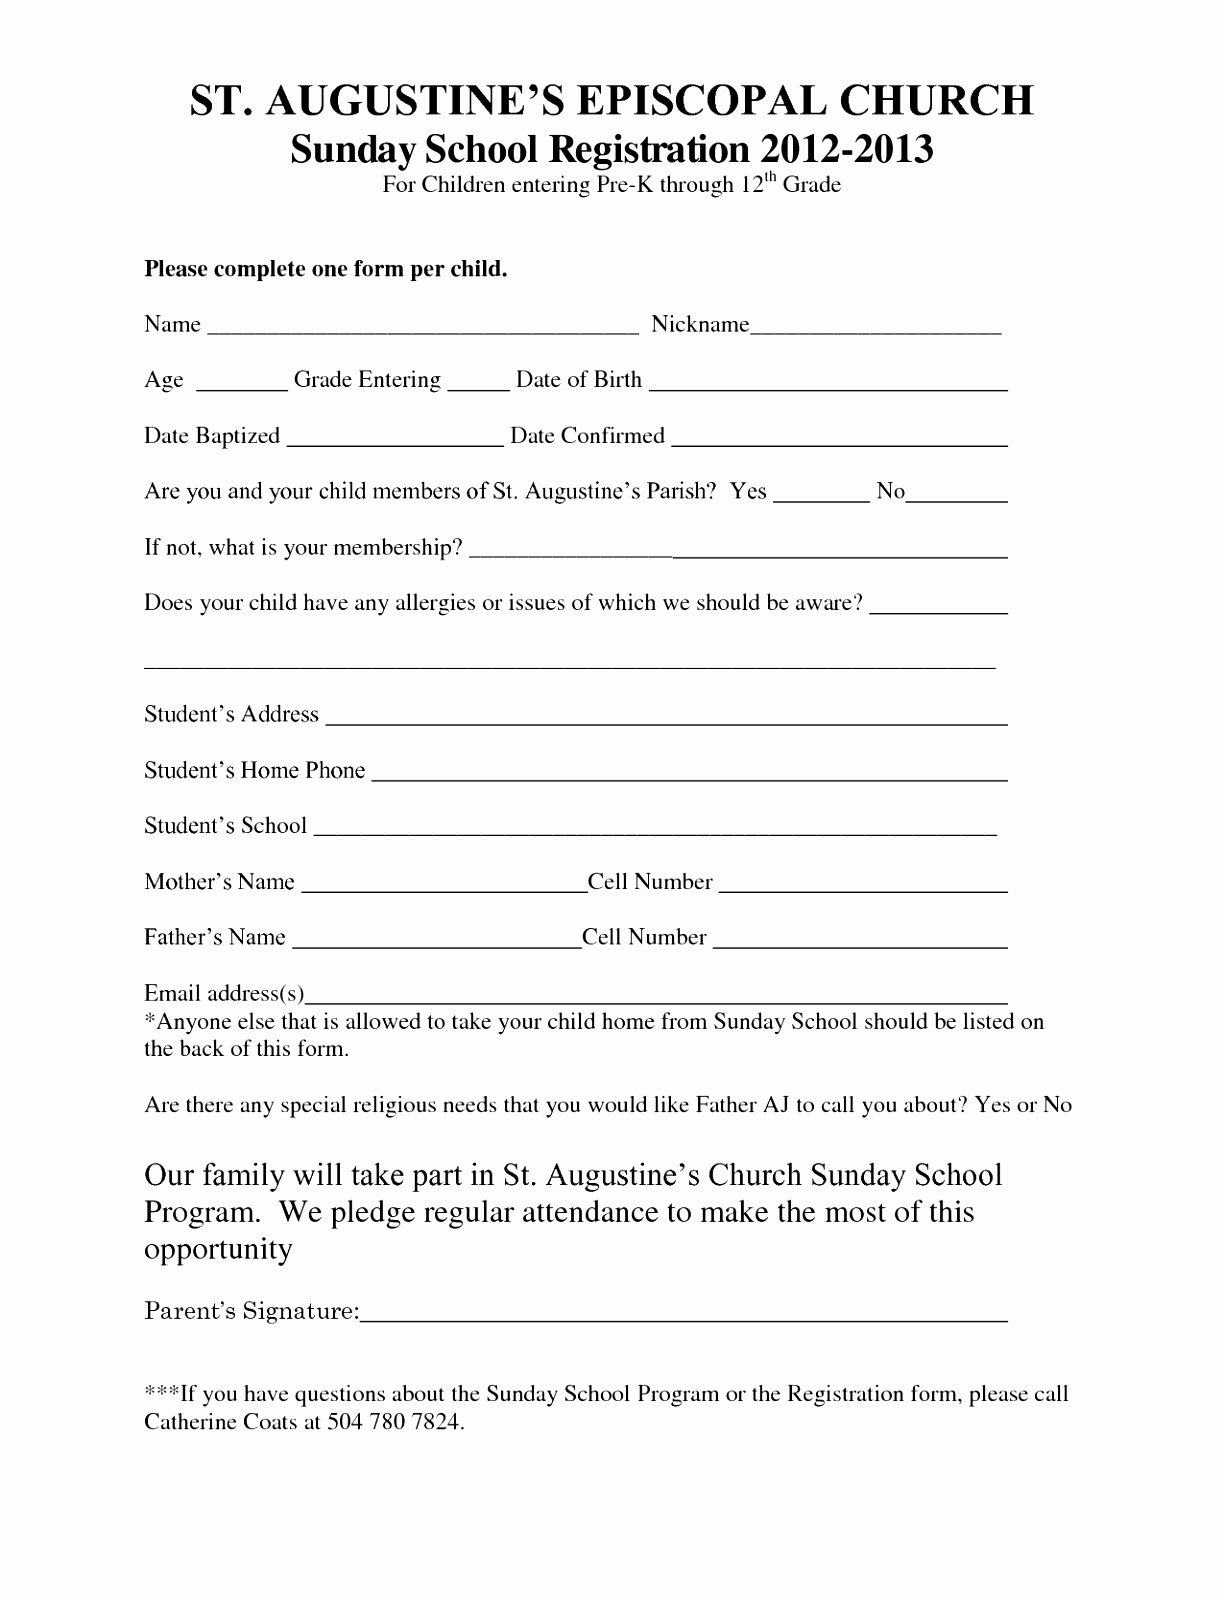 photo about Printable Registration Form Template named Printable Registration kind Template Peterainsworth